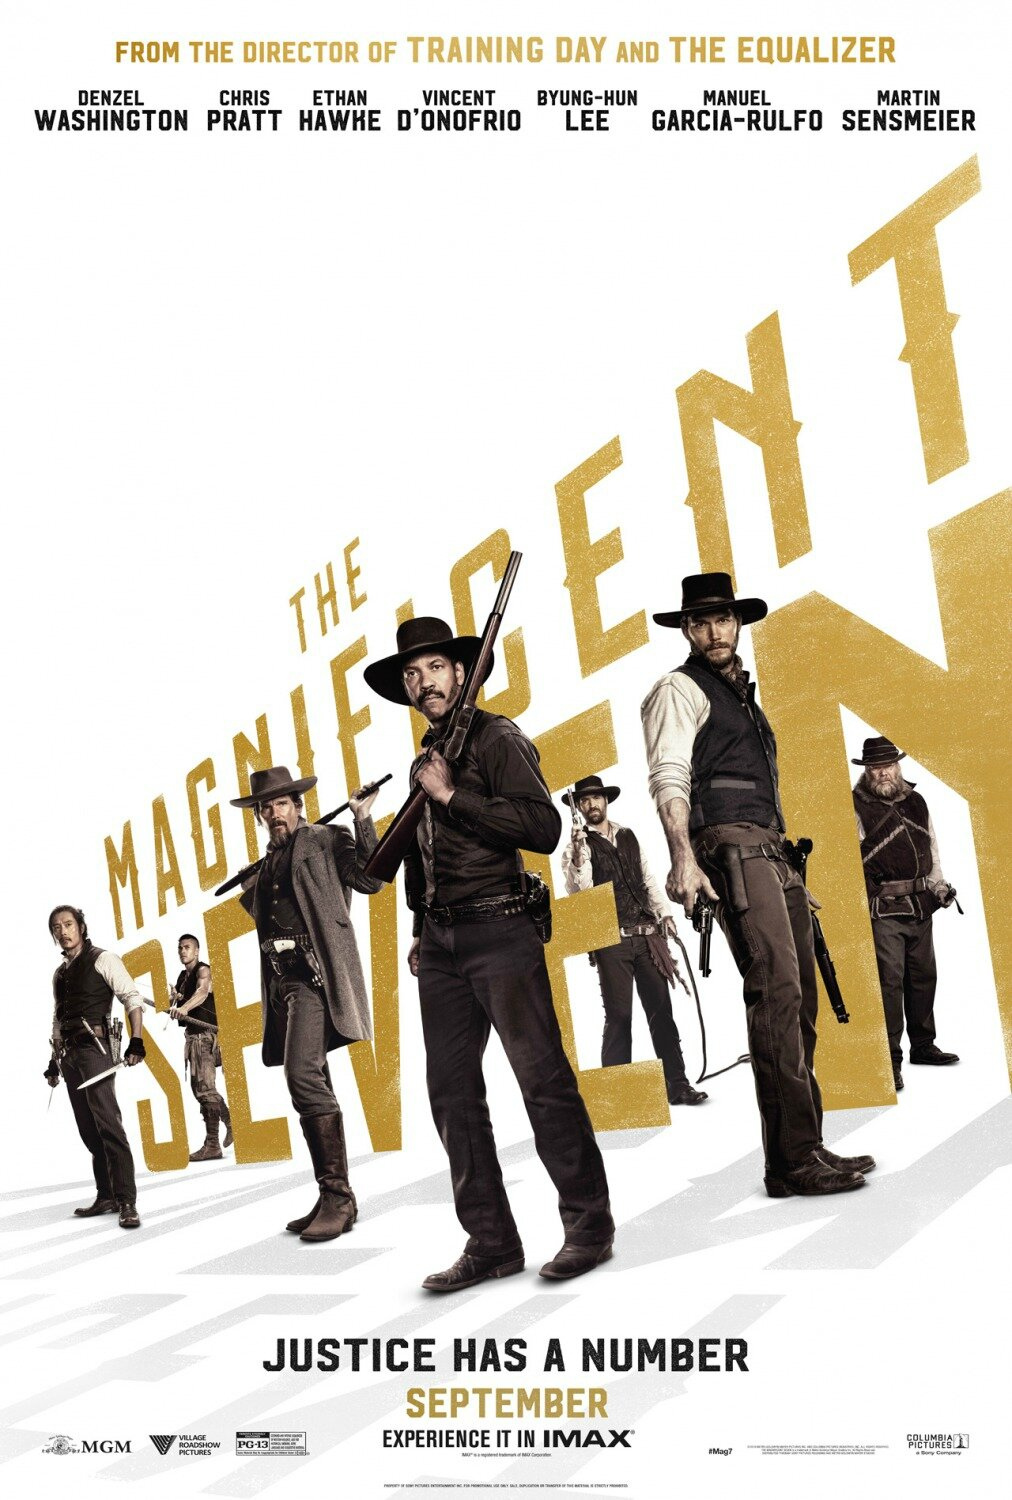 Les 7 mercenaires/The magnificent seven